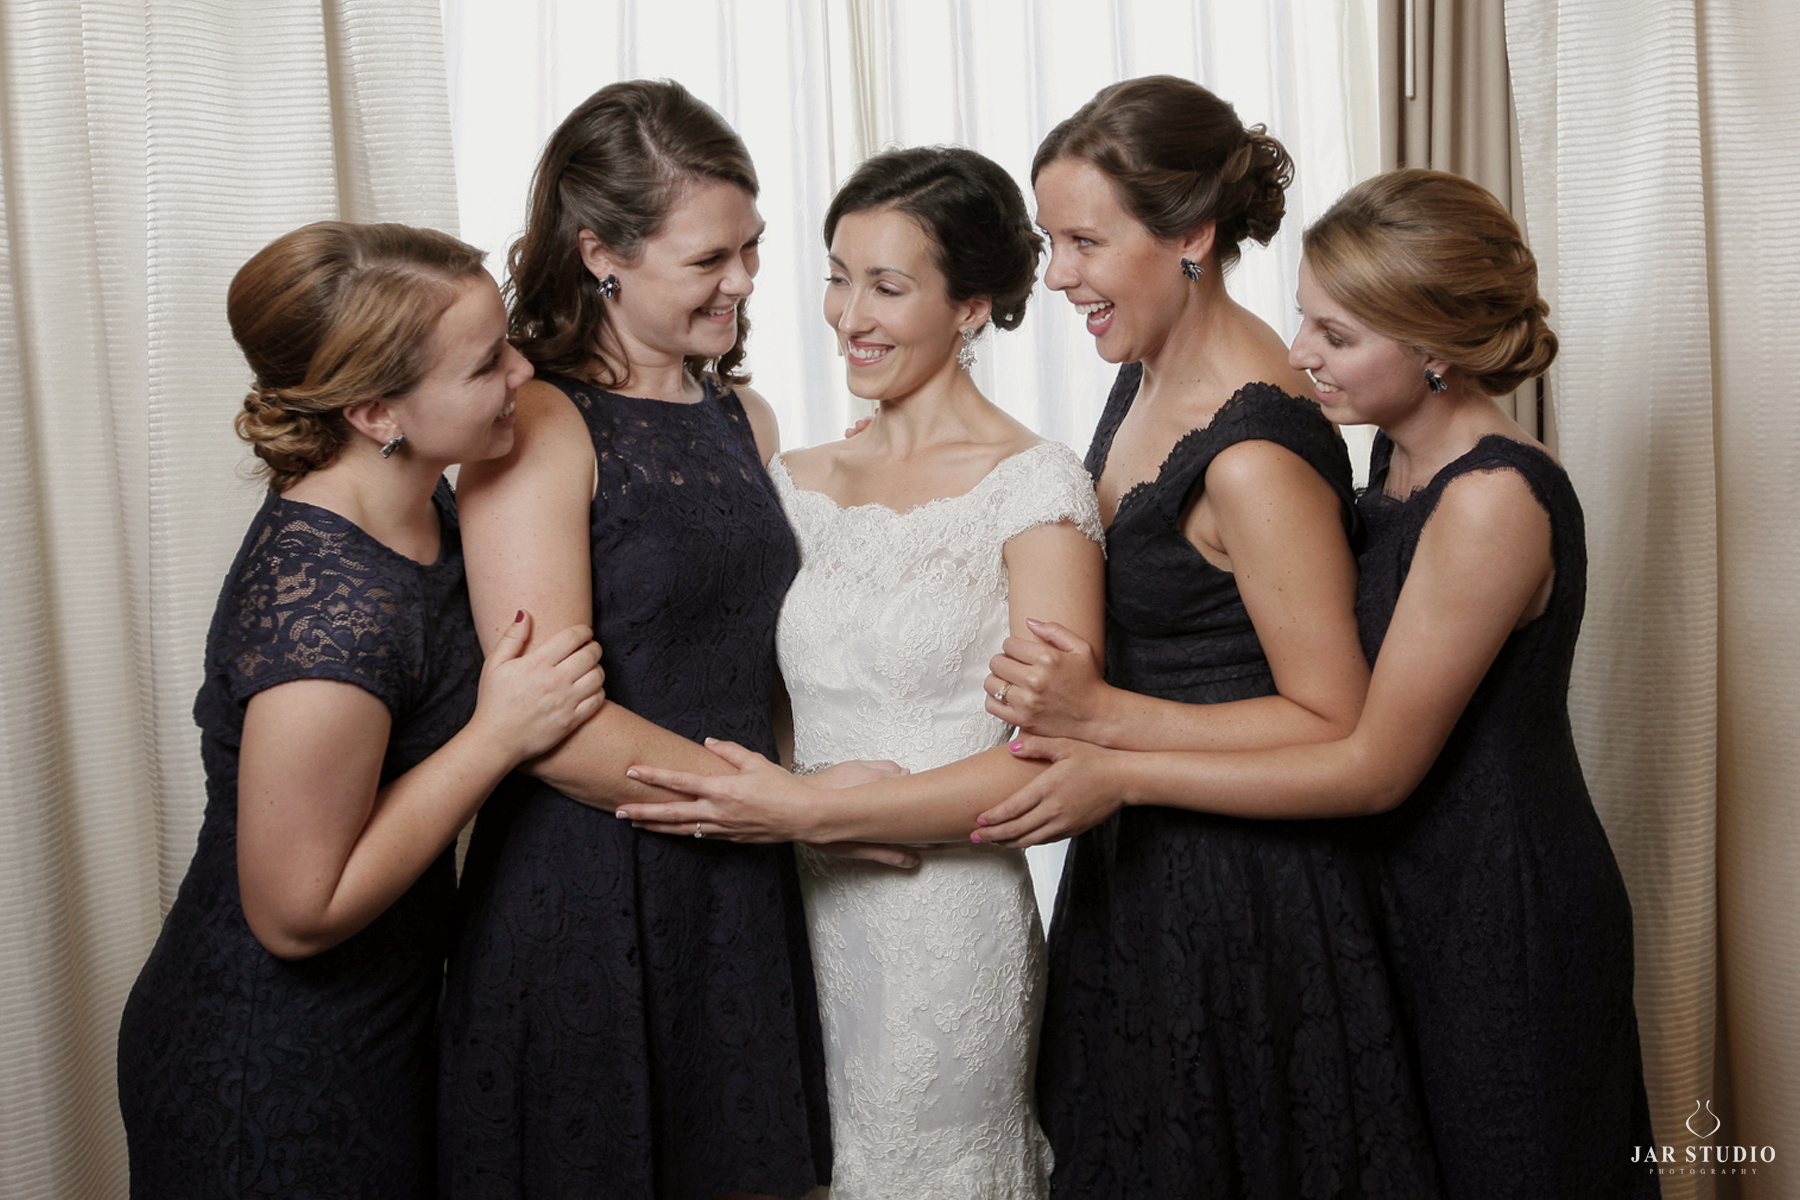 07-navy-blue-bridesmaids-dresses-lace-beautiful-fun-jarstudio-photography.JPG